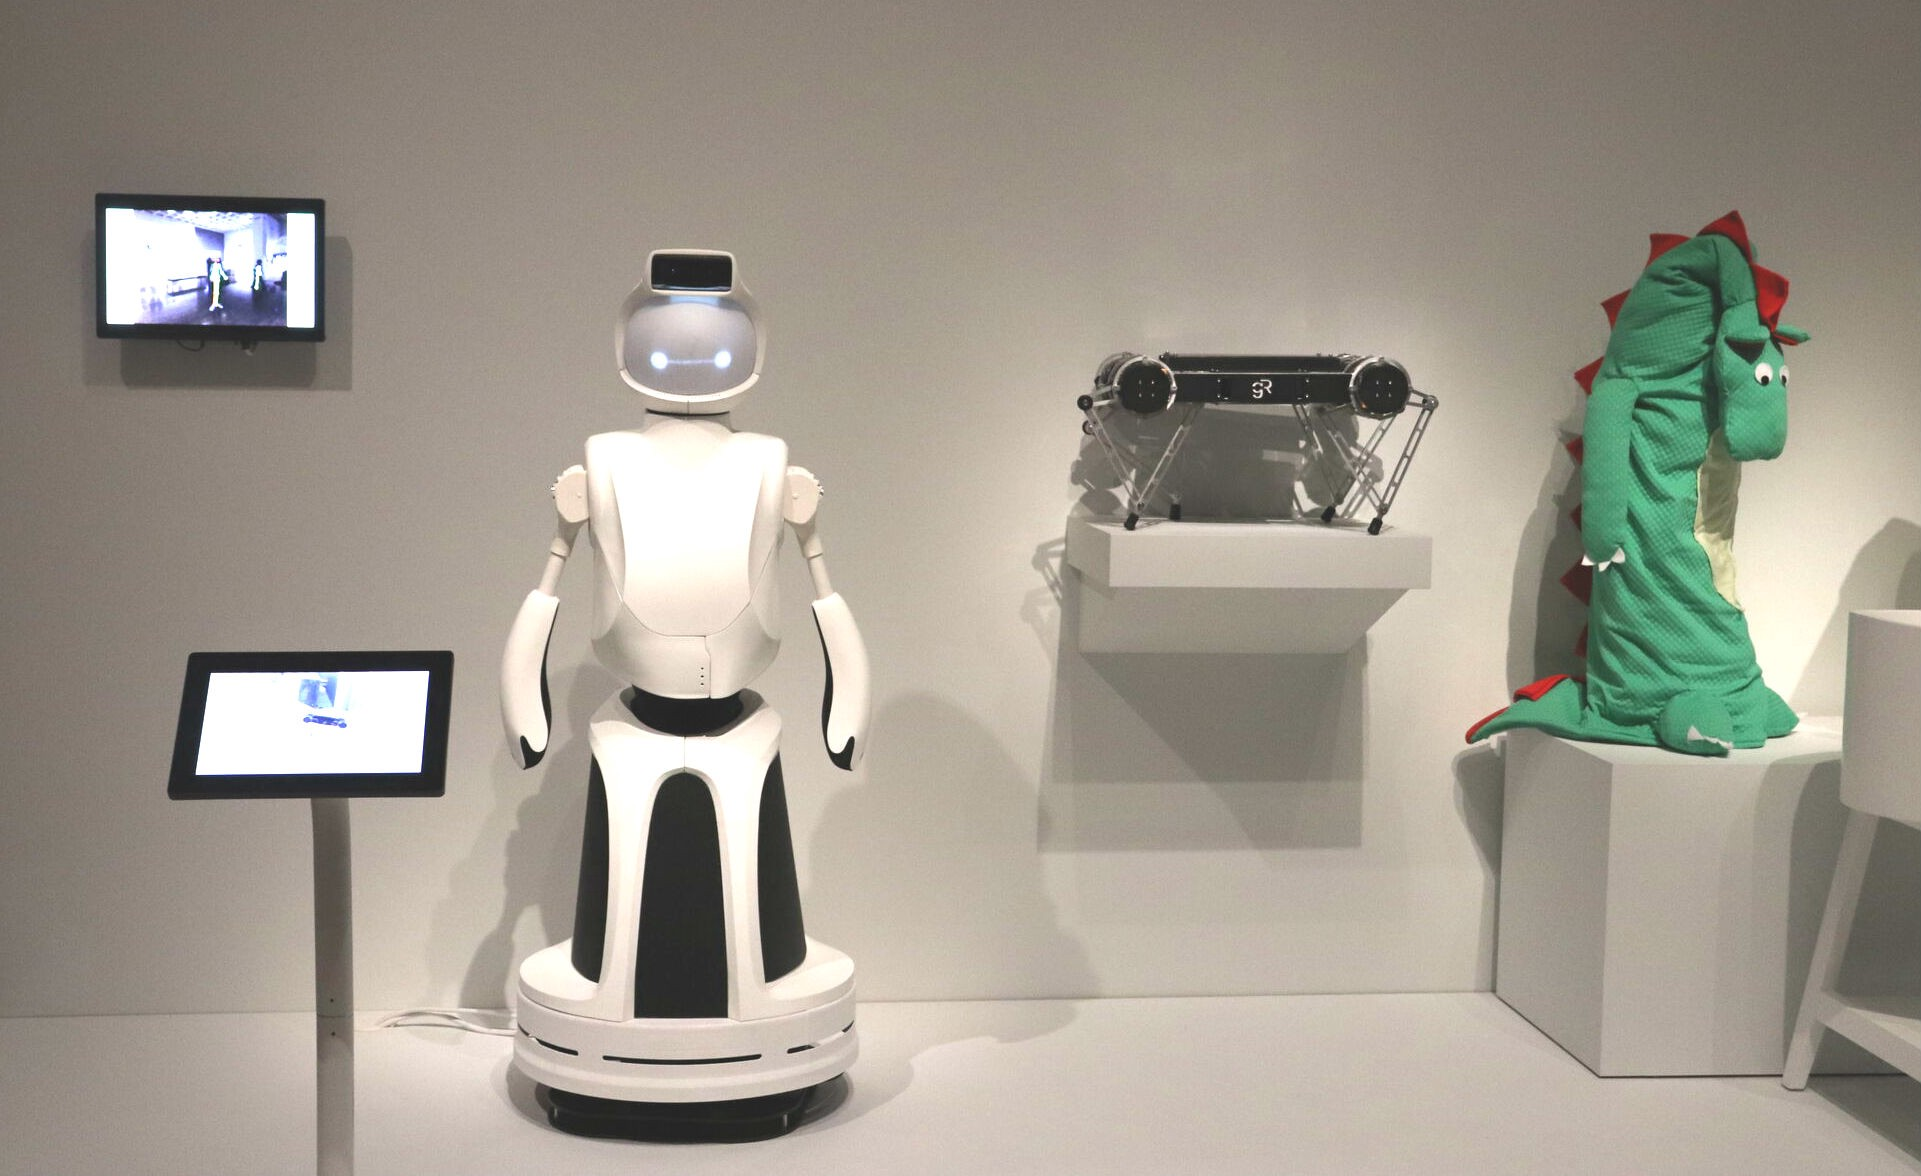 Three different robots in museum exhibit, one is human-shaped, one is a flat block with legs, last is wearing a dino costume